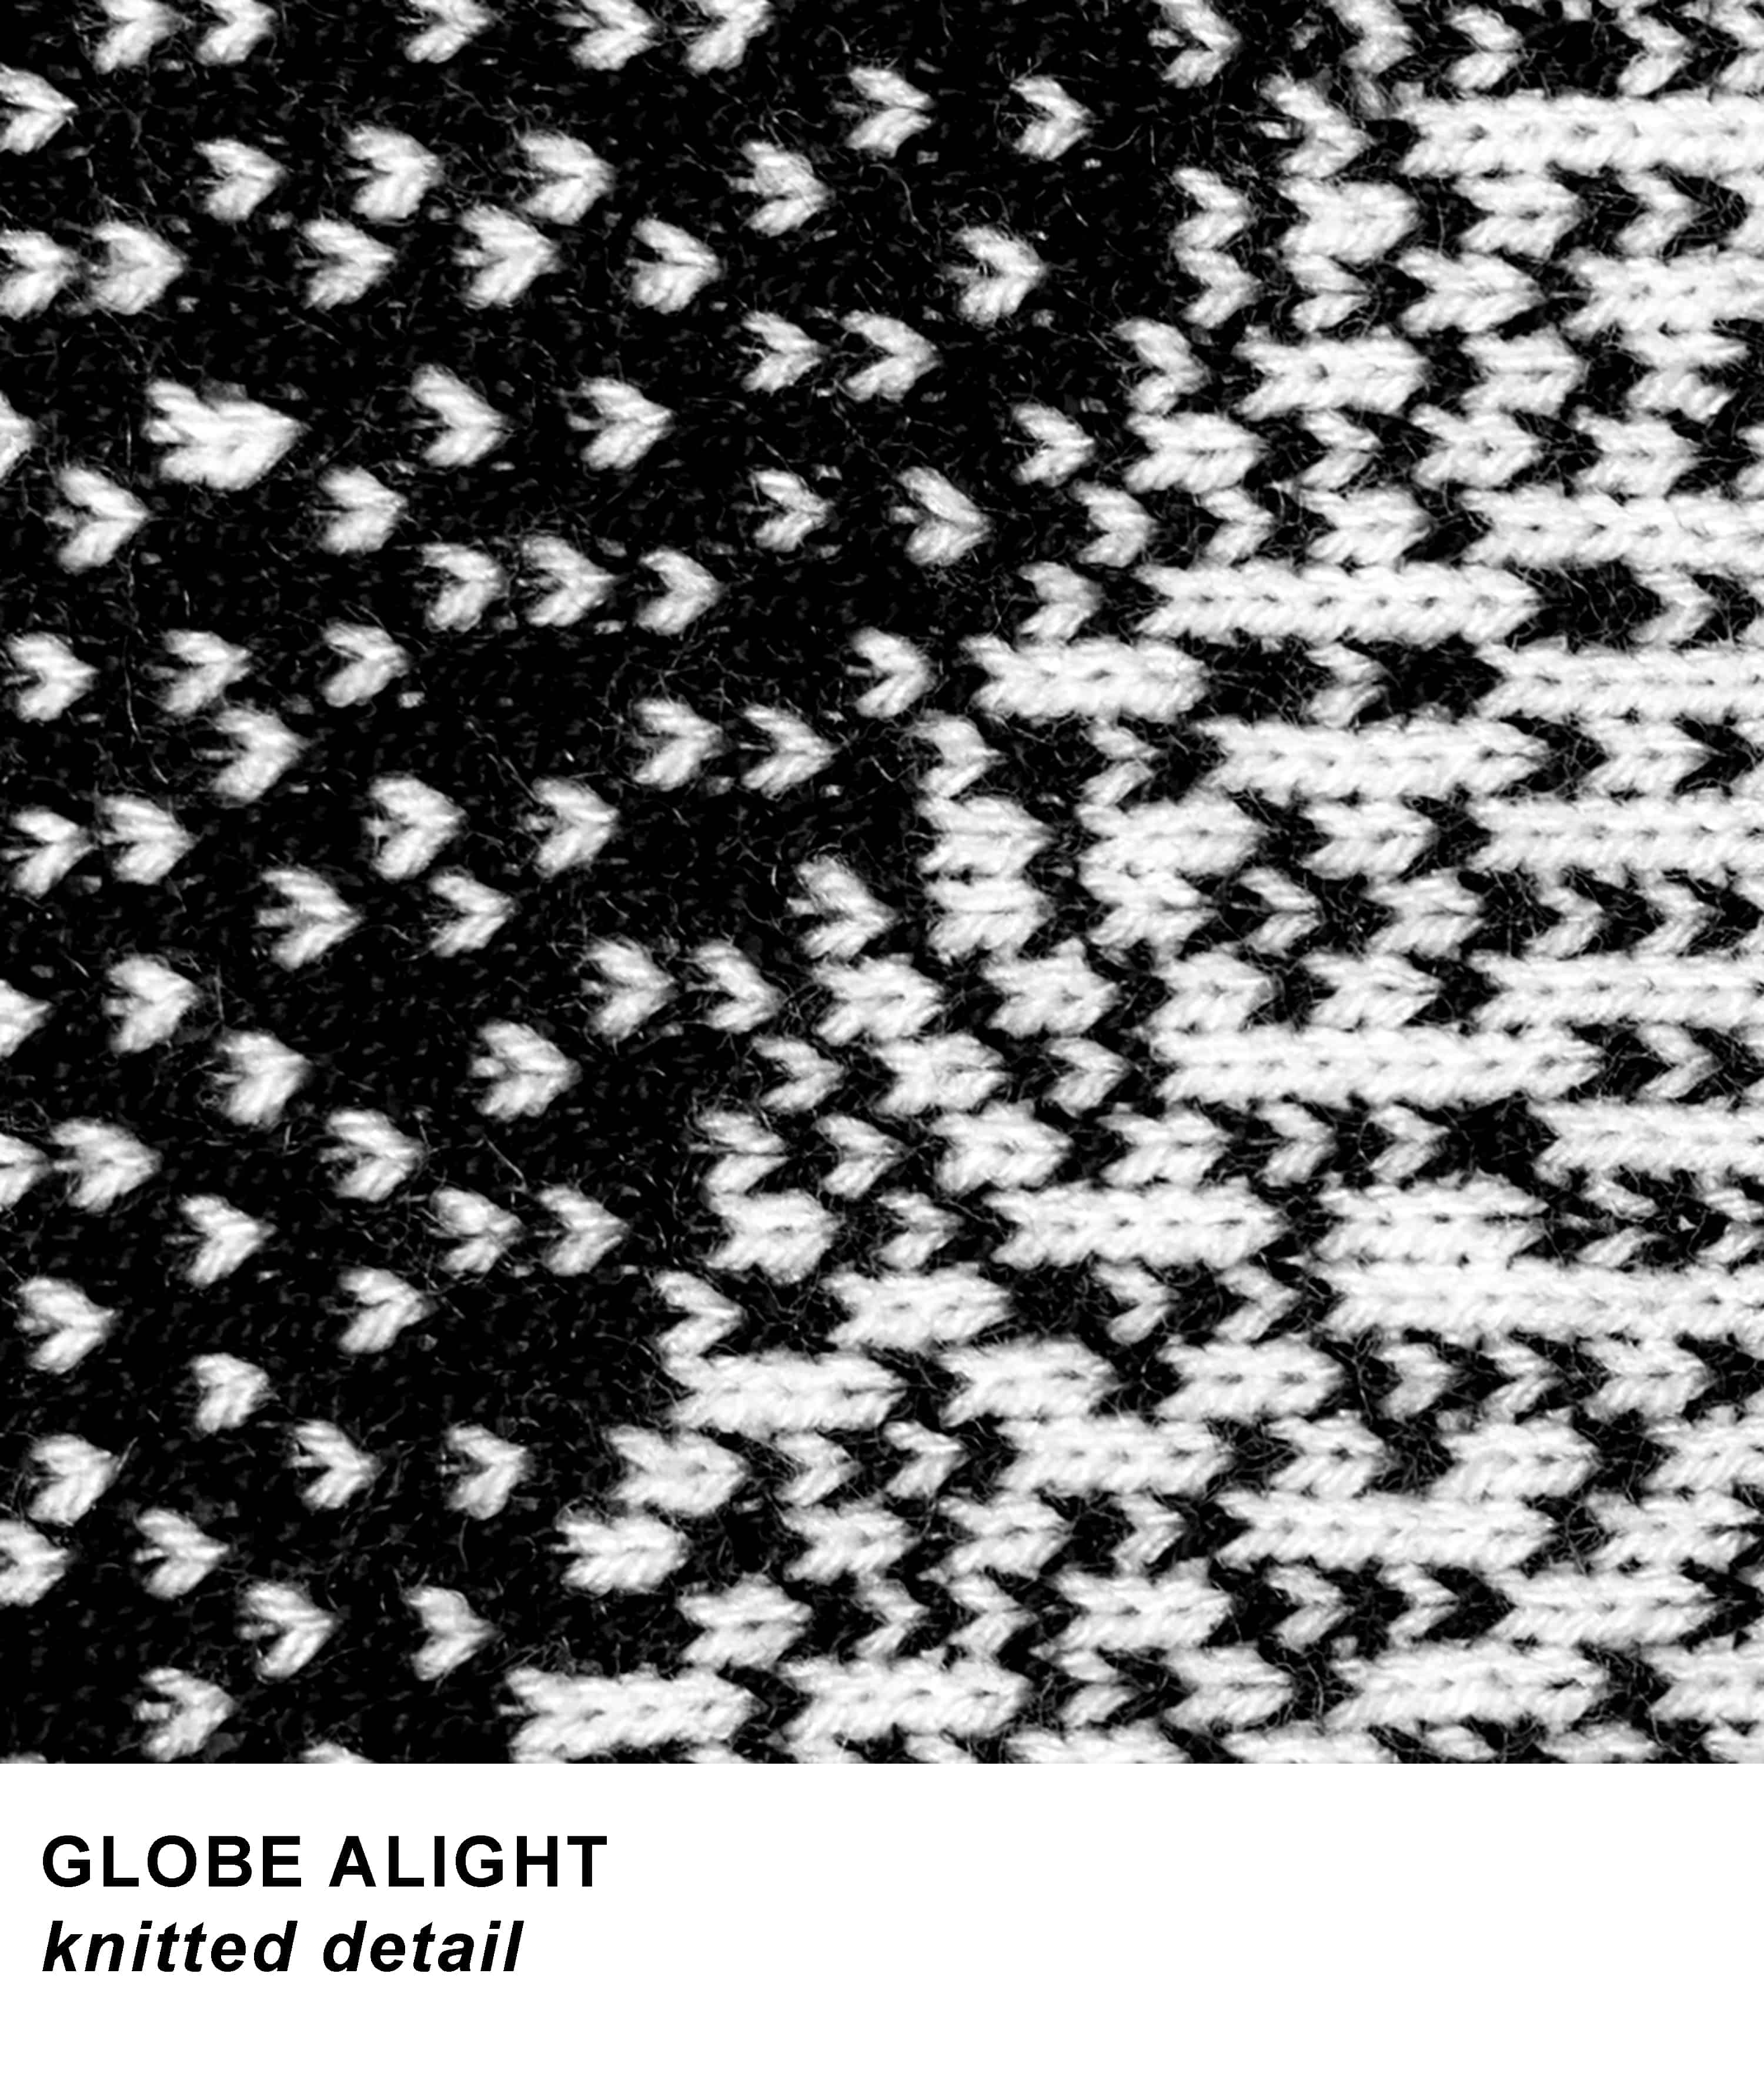 GLOBE ALIGHT knitted detail template